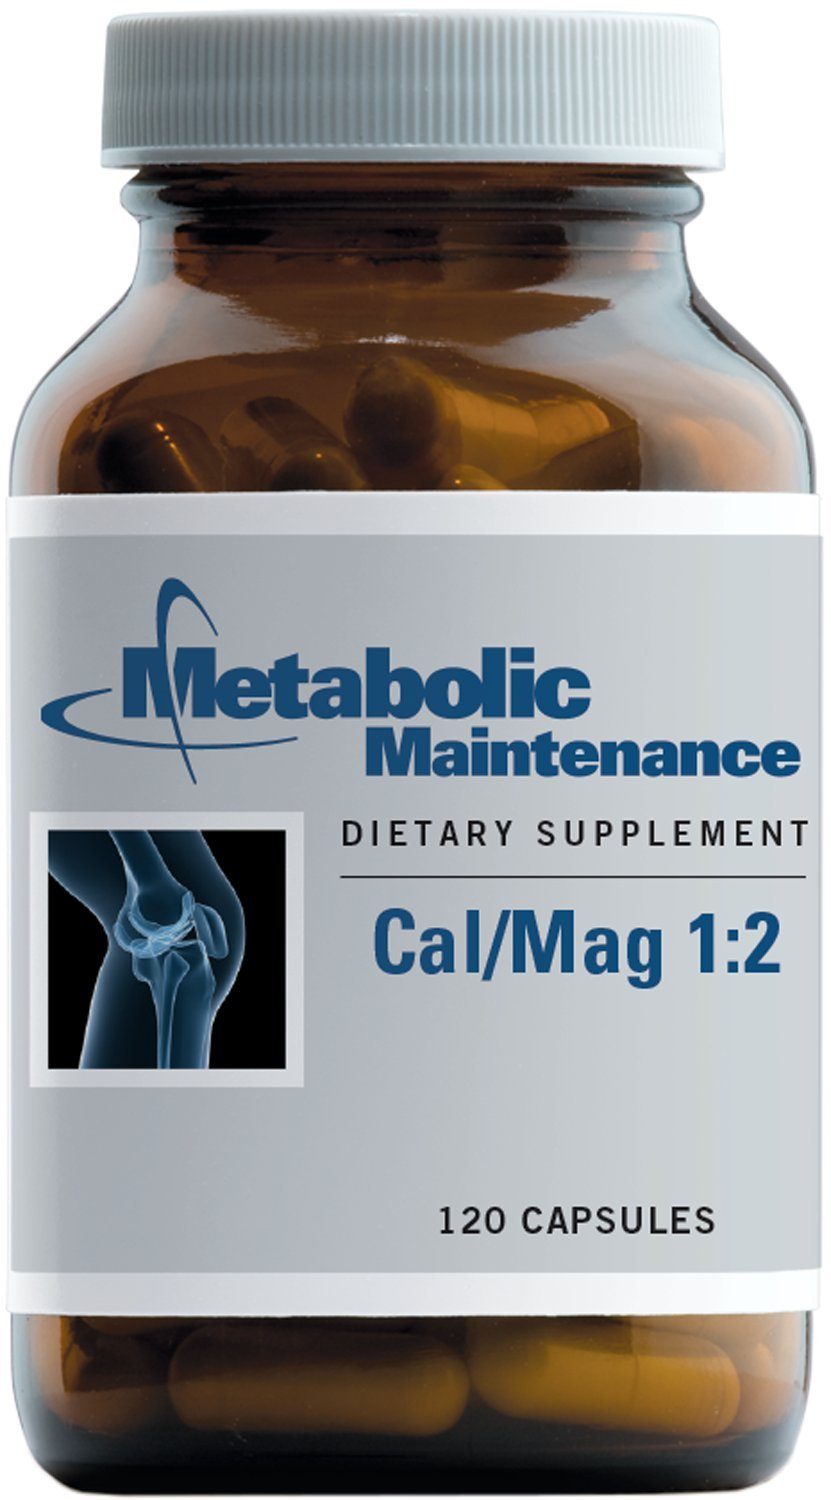 Metabolic Maintenance - Cal/Mag 1:2 - Extra Magnesium for Bone + Heart Support, 120 Capsules